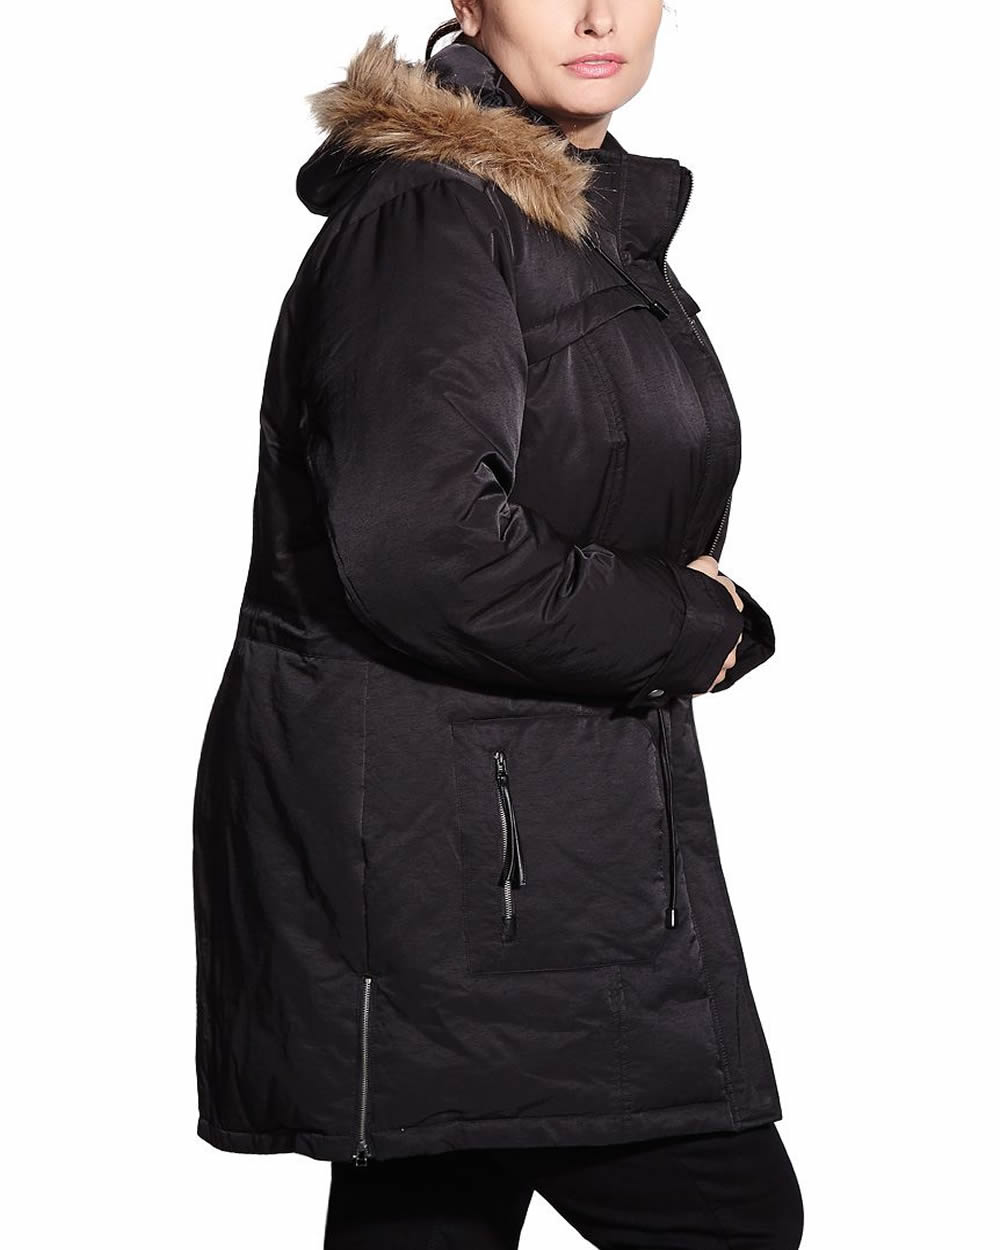 Plus Size Coats. Don't get stuck in the cold this winter—cozy up to the warmest plus size coats around. From classic cold weather styles to the must-have plus size outerwear trends of the season, fill your wardrobe with the hottest looks for the winter. Incorporate .